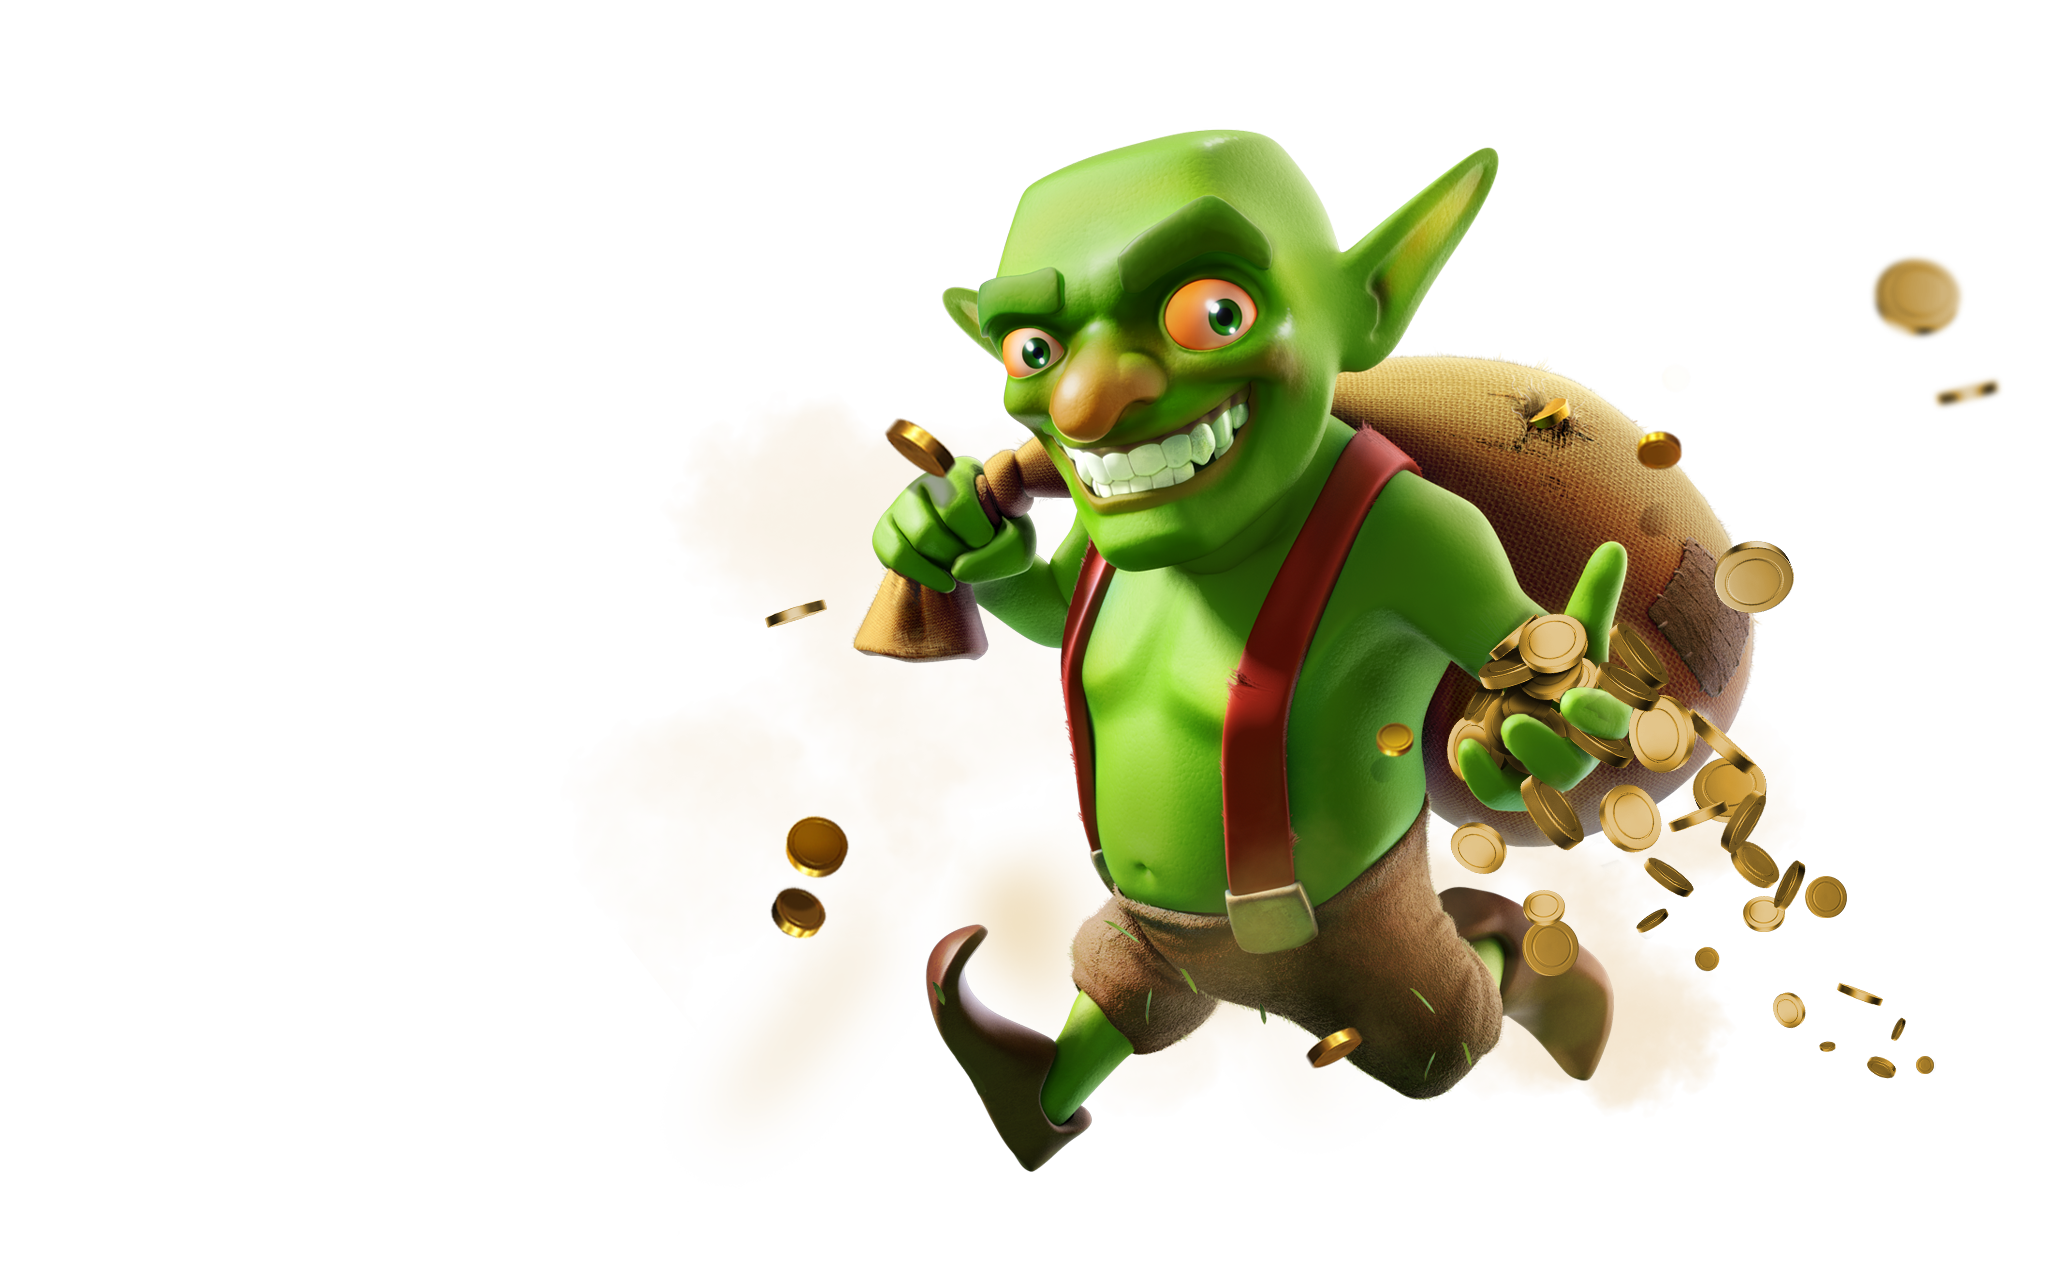 Goblin clash royale png. New characters pinterest artwork